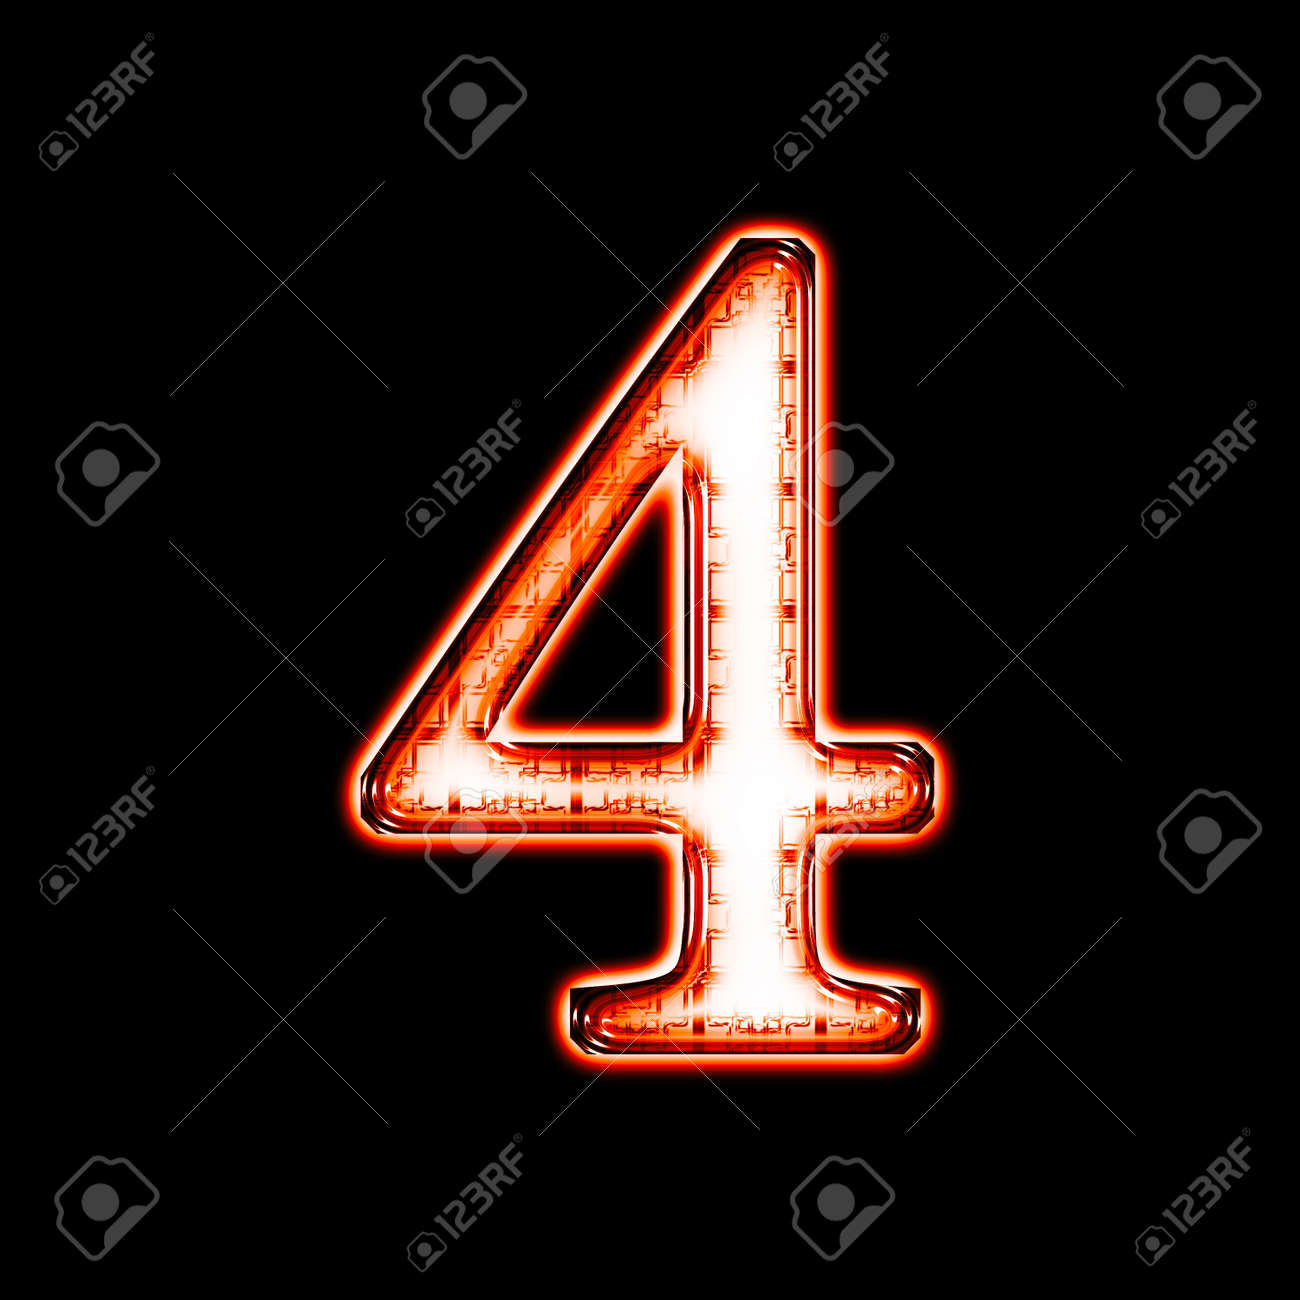 Glowing neon number on black background for web or desktop Stock Photo - 8686439